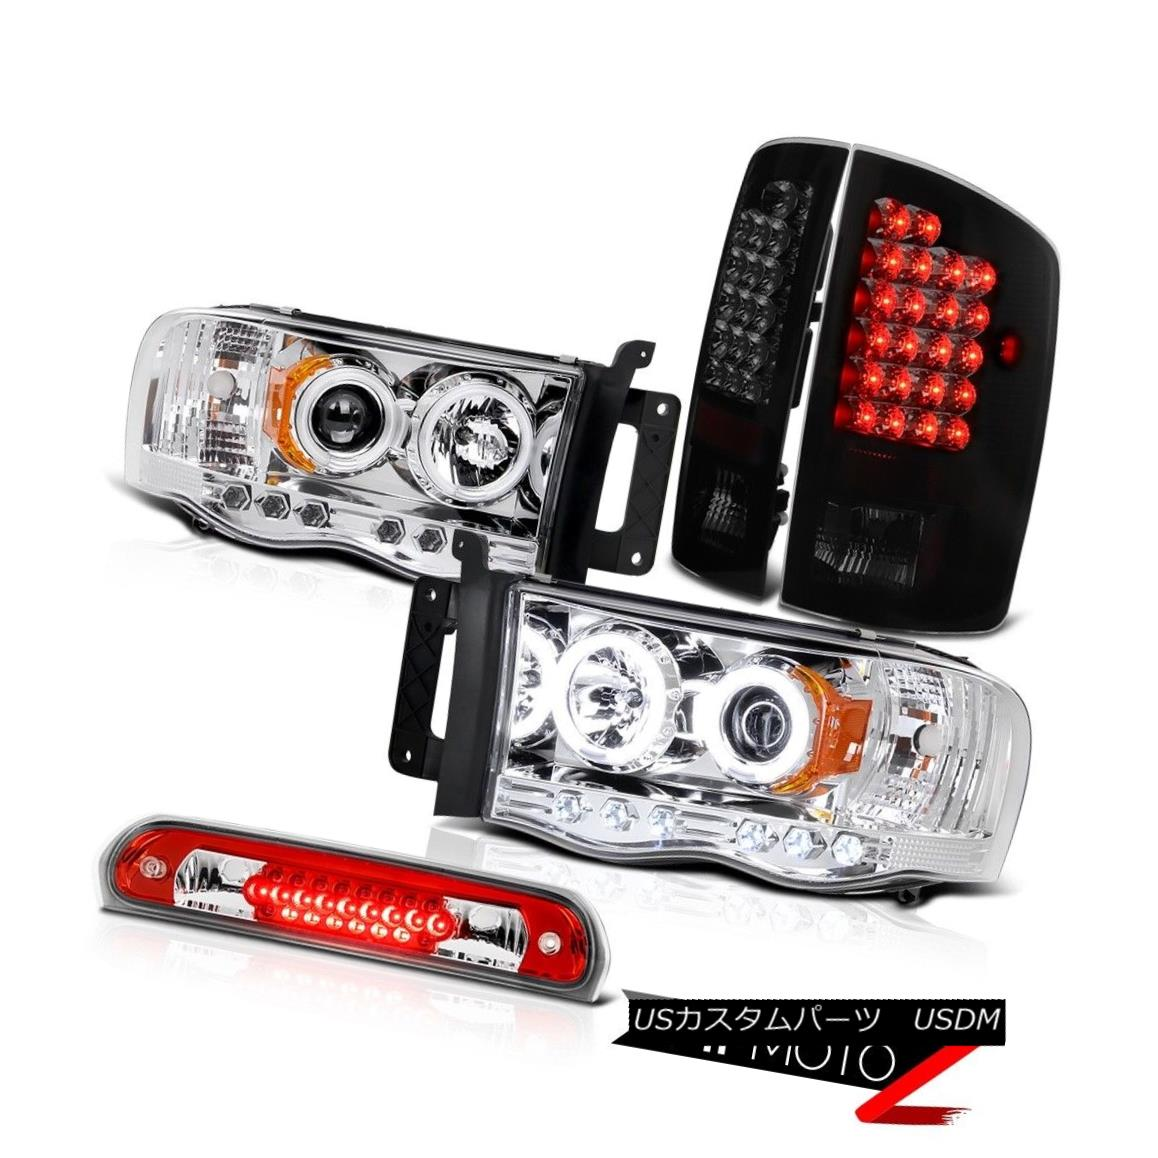 テールライト Brightest CCFL Headlights Philip SuperFlux LED Taillights Roof 02-05 Dodge Ram 最も明るいCCFLヘッドライトPhilip SuperFlux LED曇り屋根屋根02-05 Dodge Ram